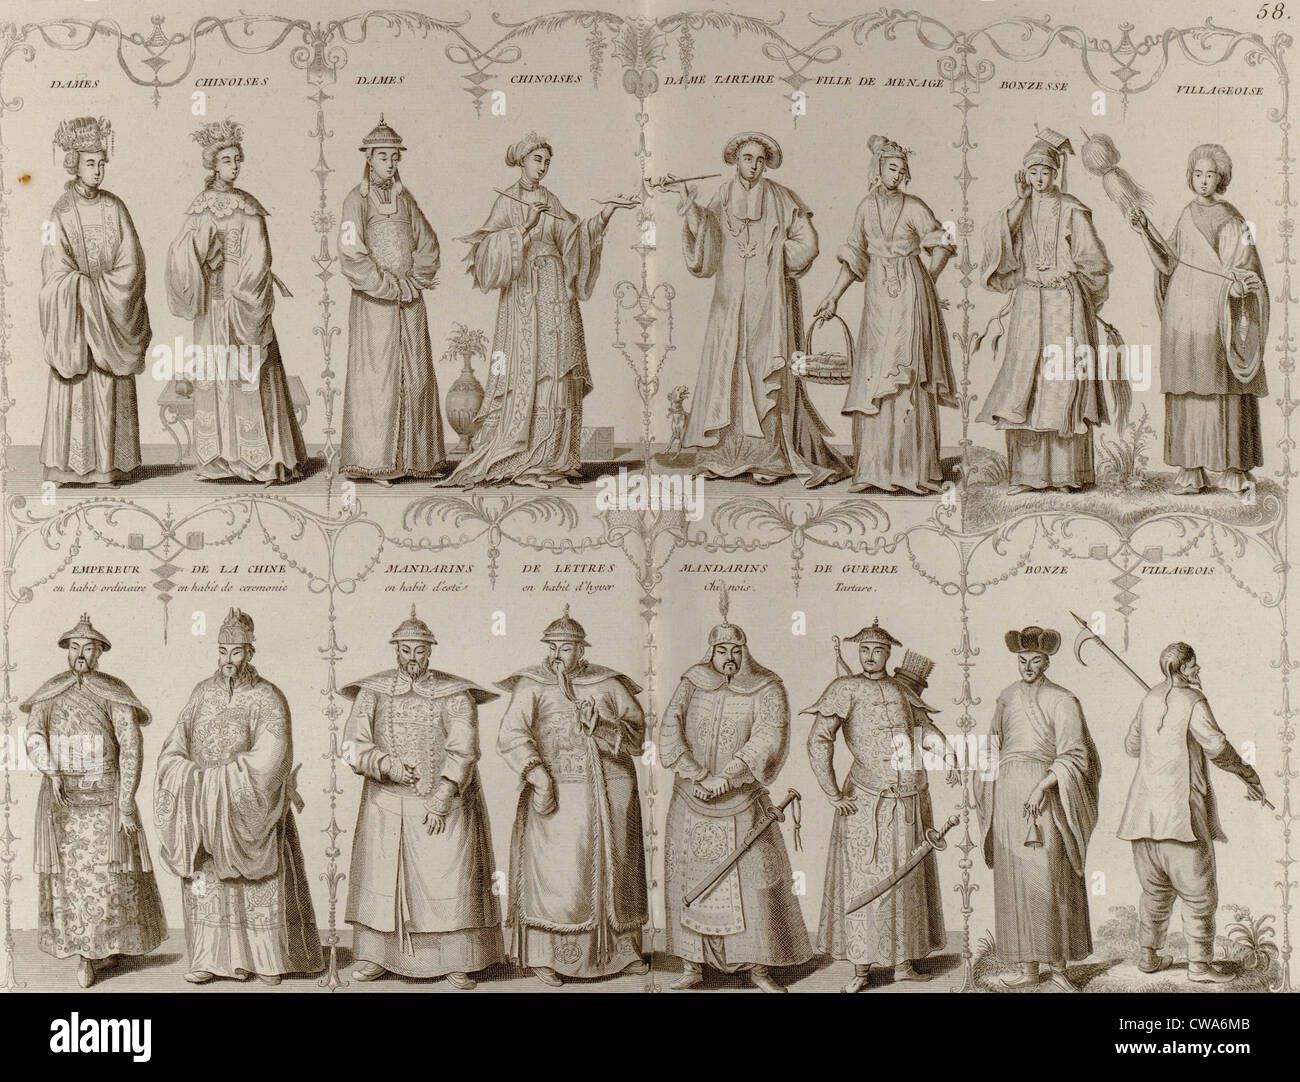 18th century European engraving depicting Chinese men and women of various social classes. - Stock Image